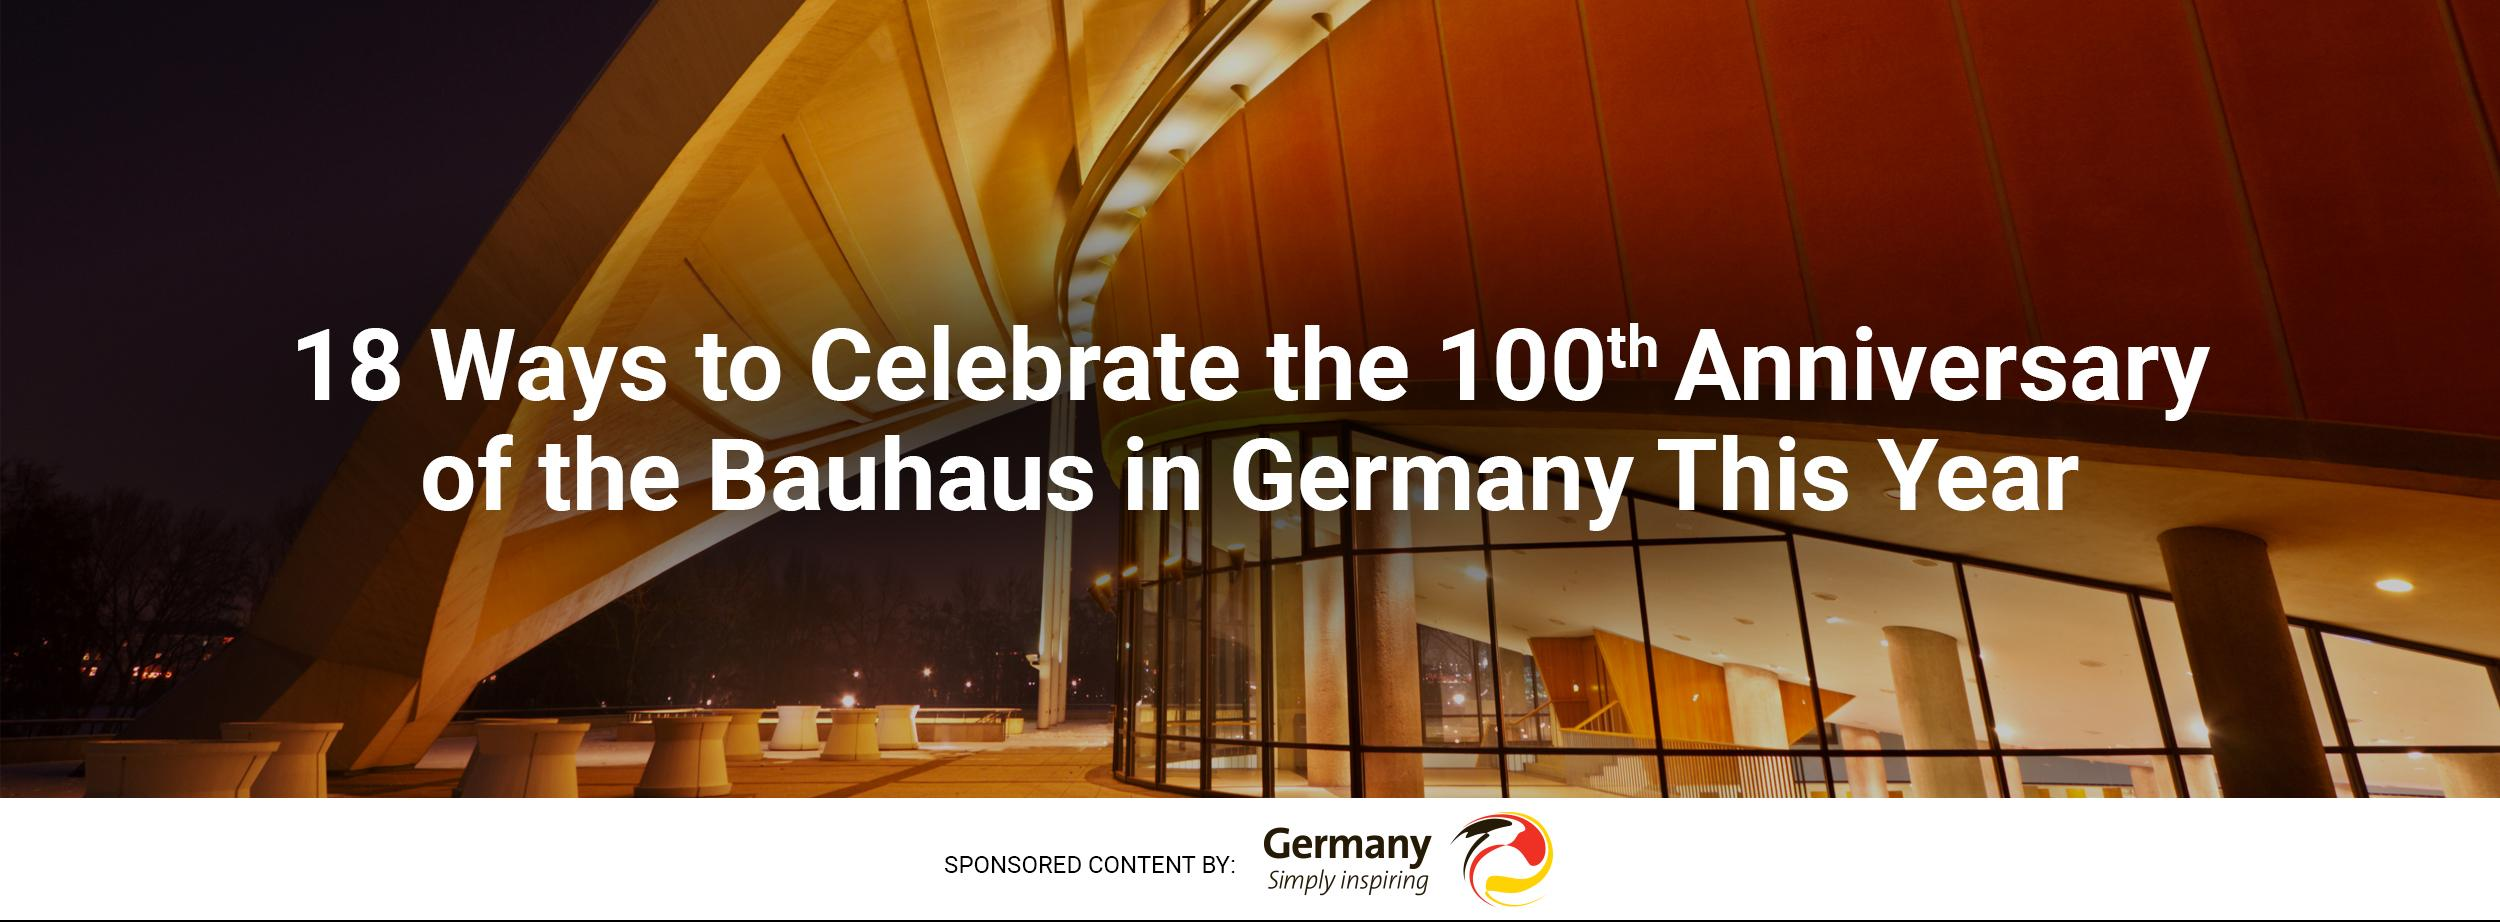 18 Ways To Celebrate The Bauhaus 100th Anniversary In